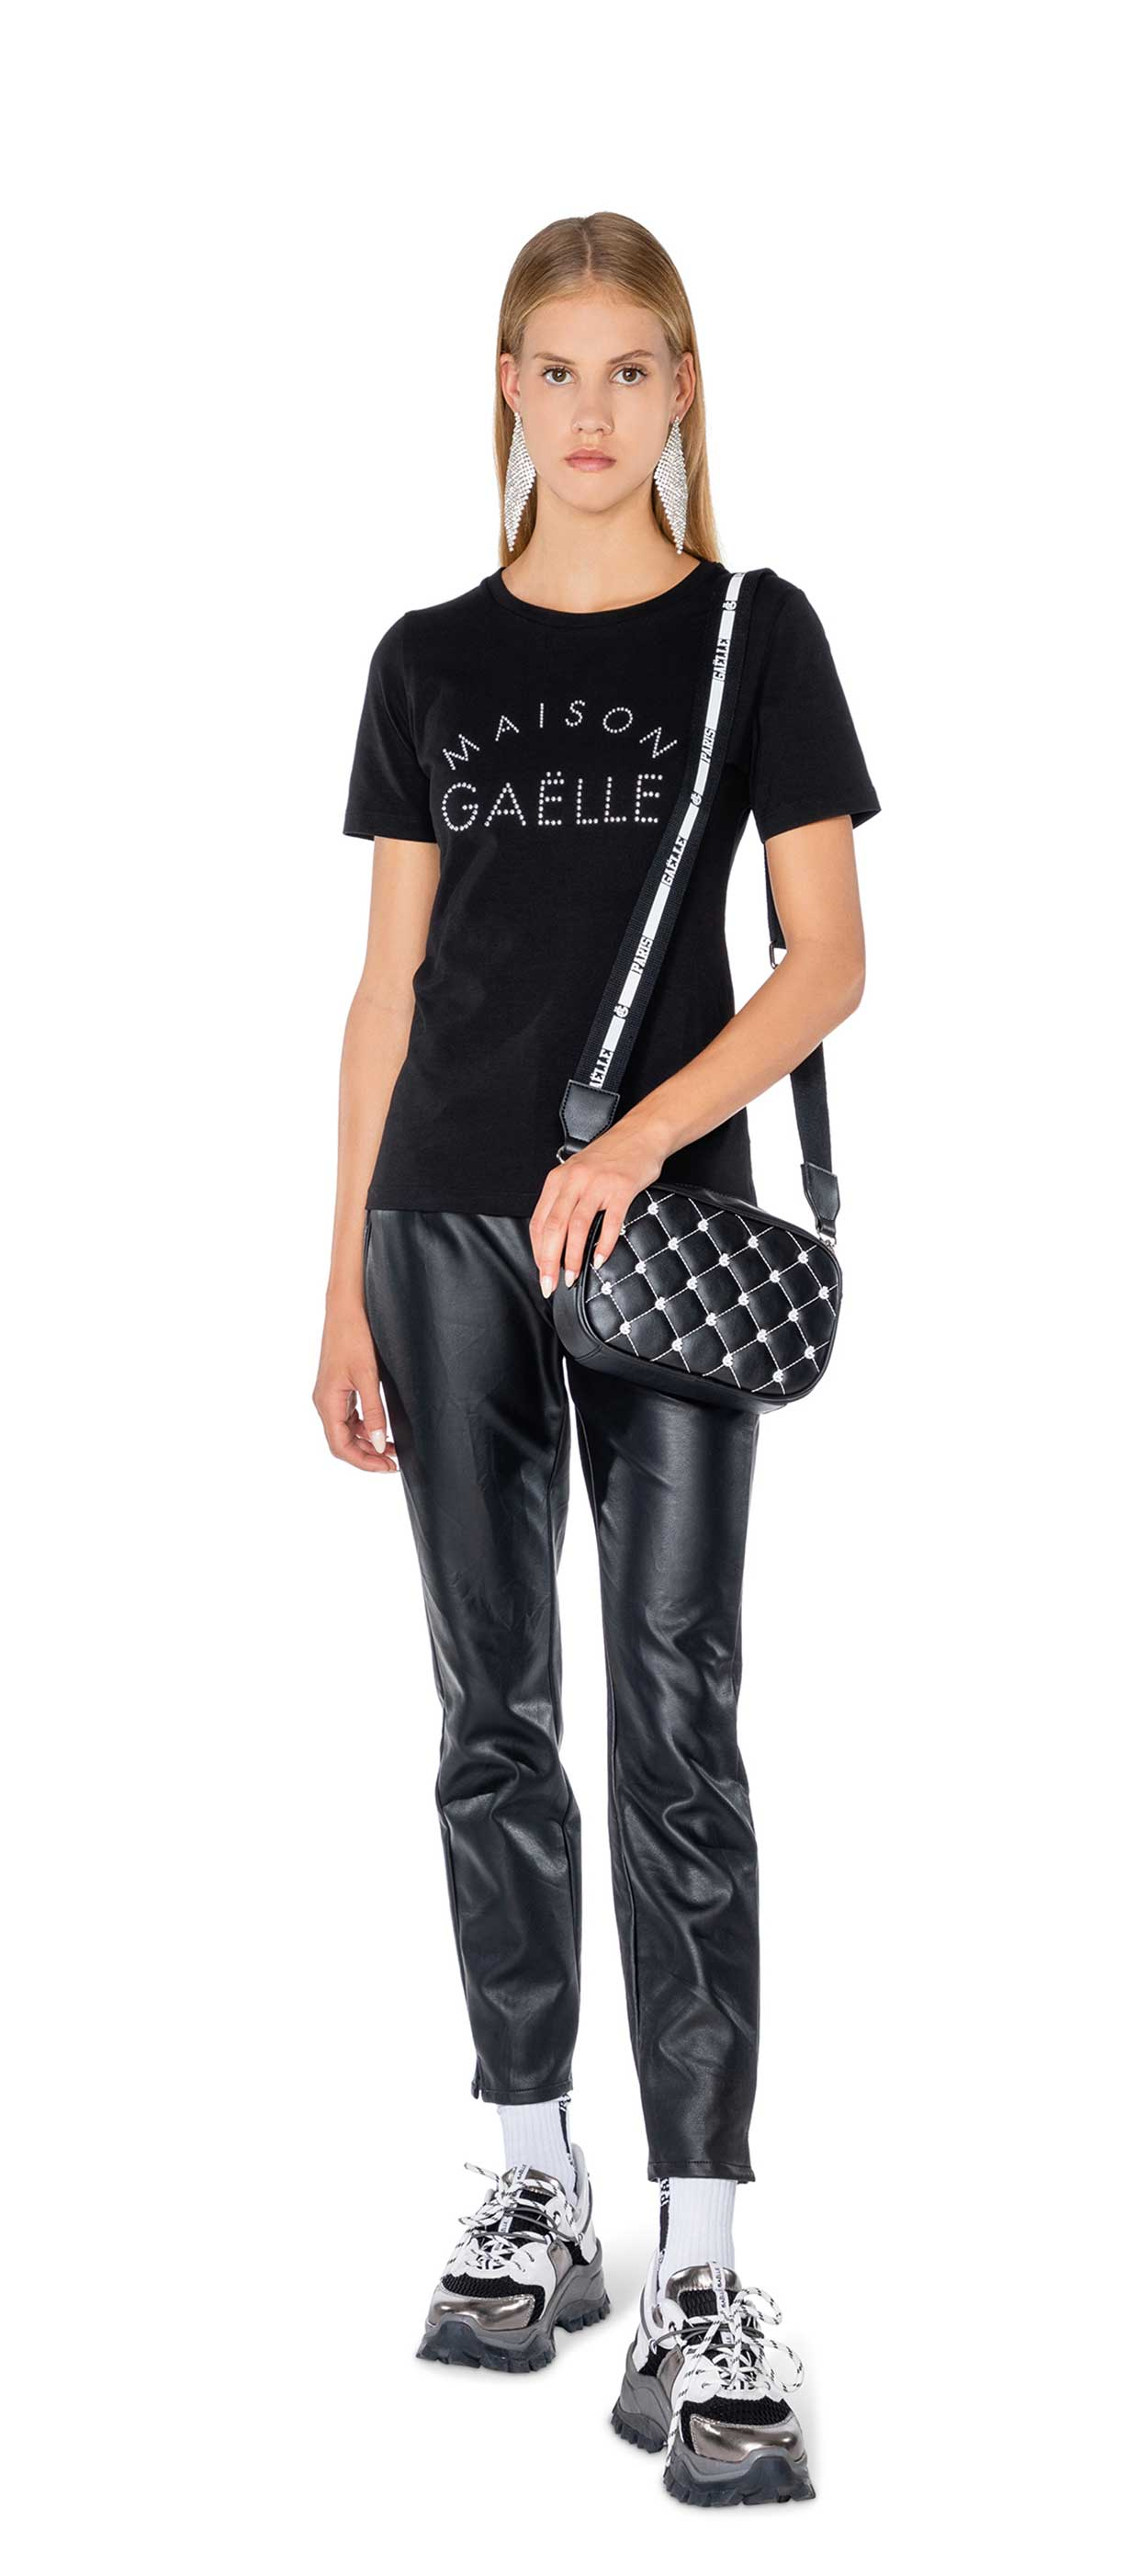 T-SHIRT - GBD7109 - GAELLE PARIS